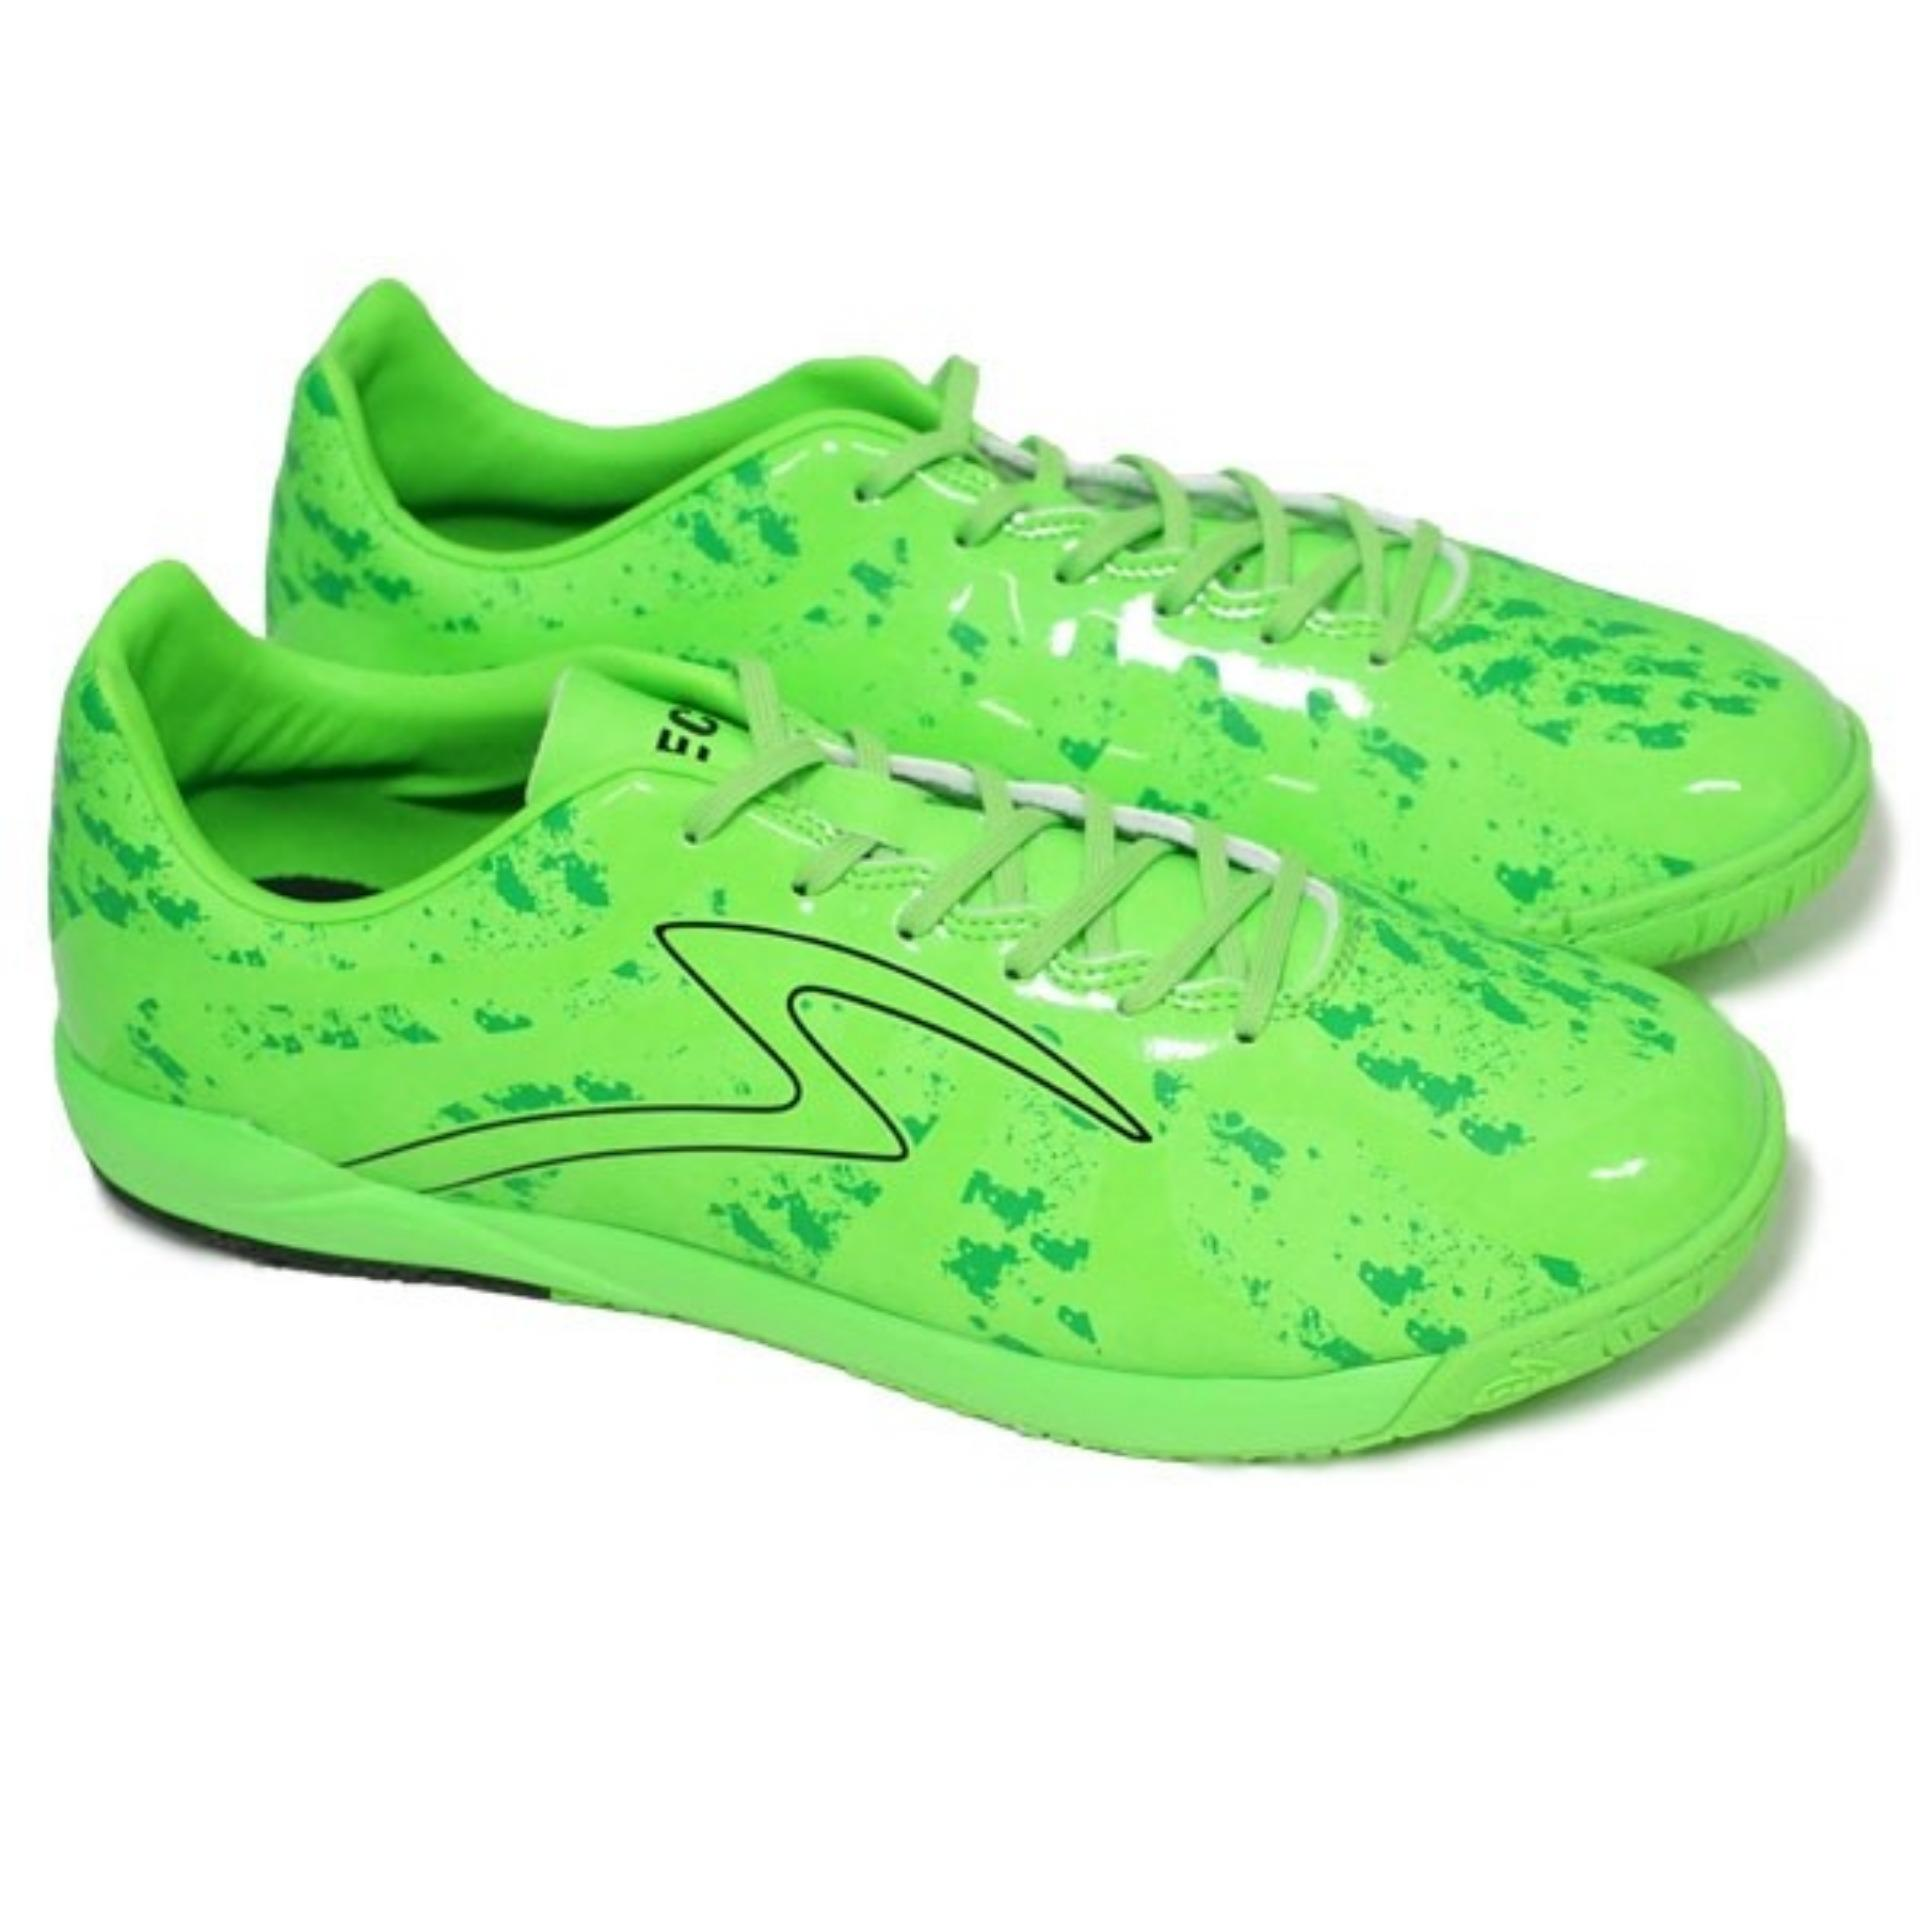 Specs Barricada Ultima In SE Opal Green Dark Green Black | Sepatu Futsal